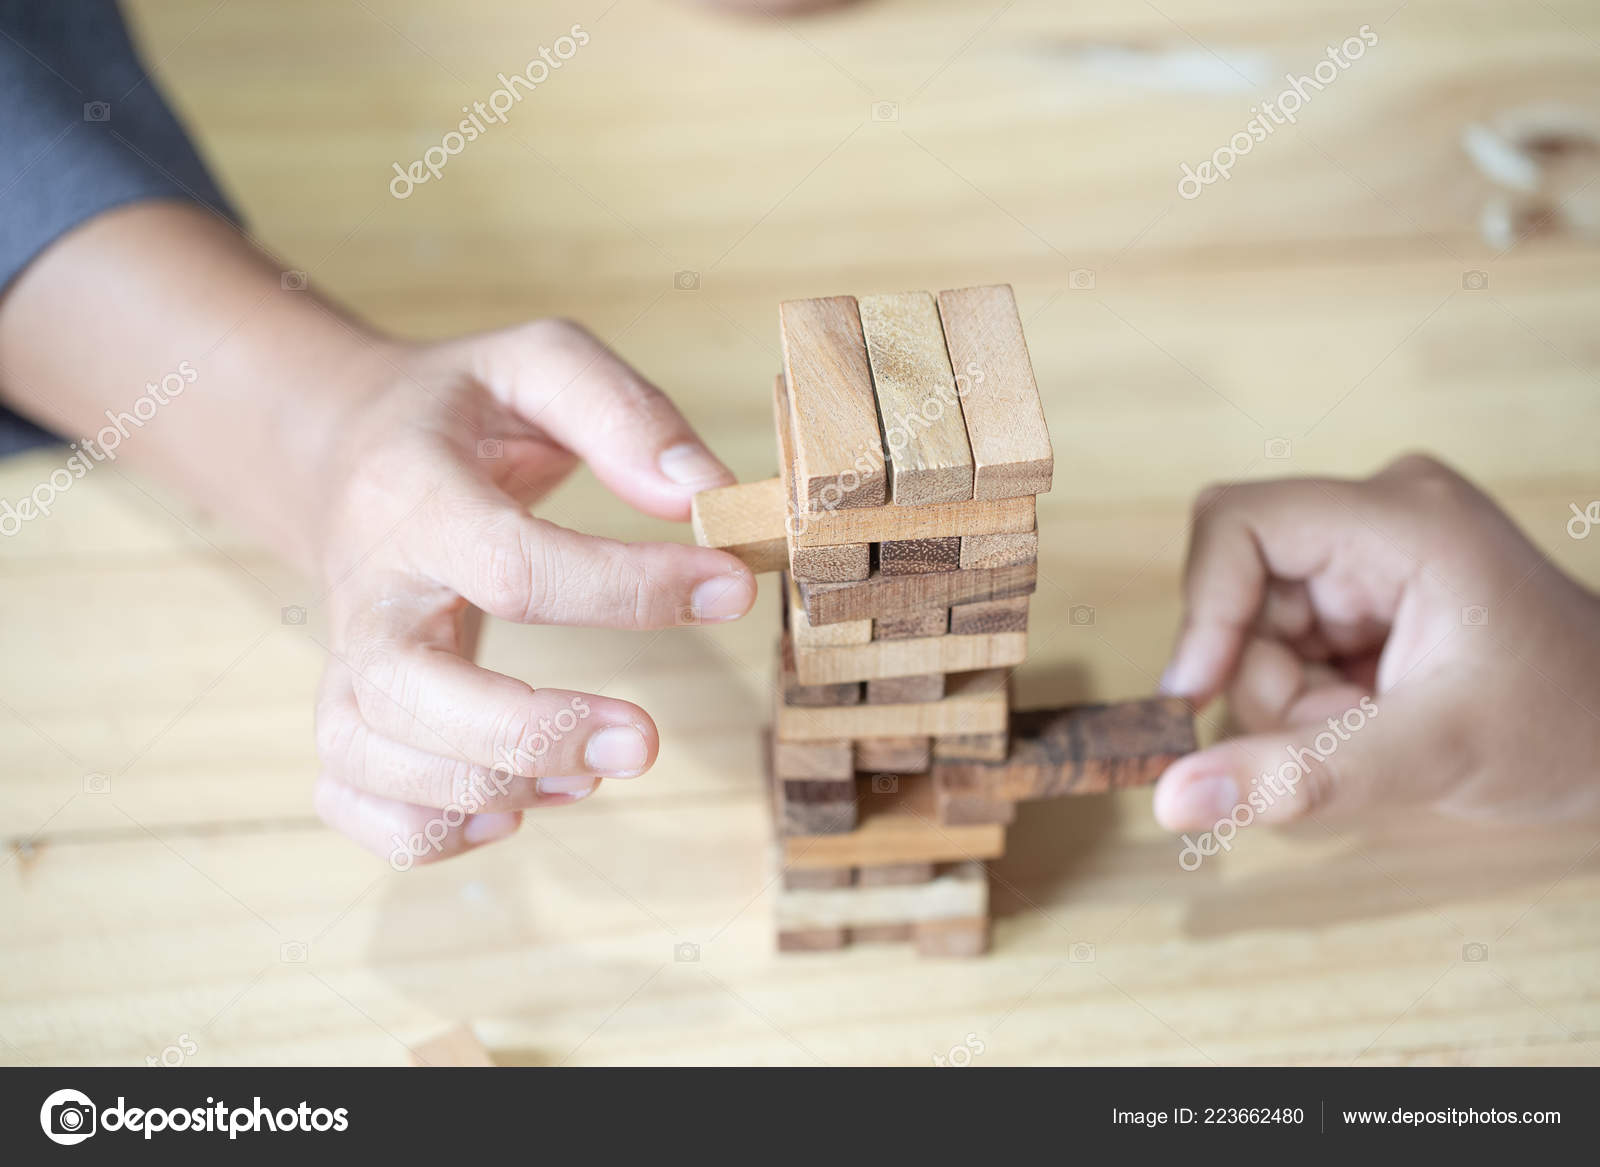 Images Hand Businesspeople Placing Pulling Wood Block Tower